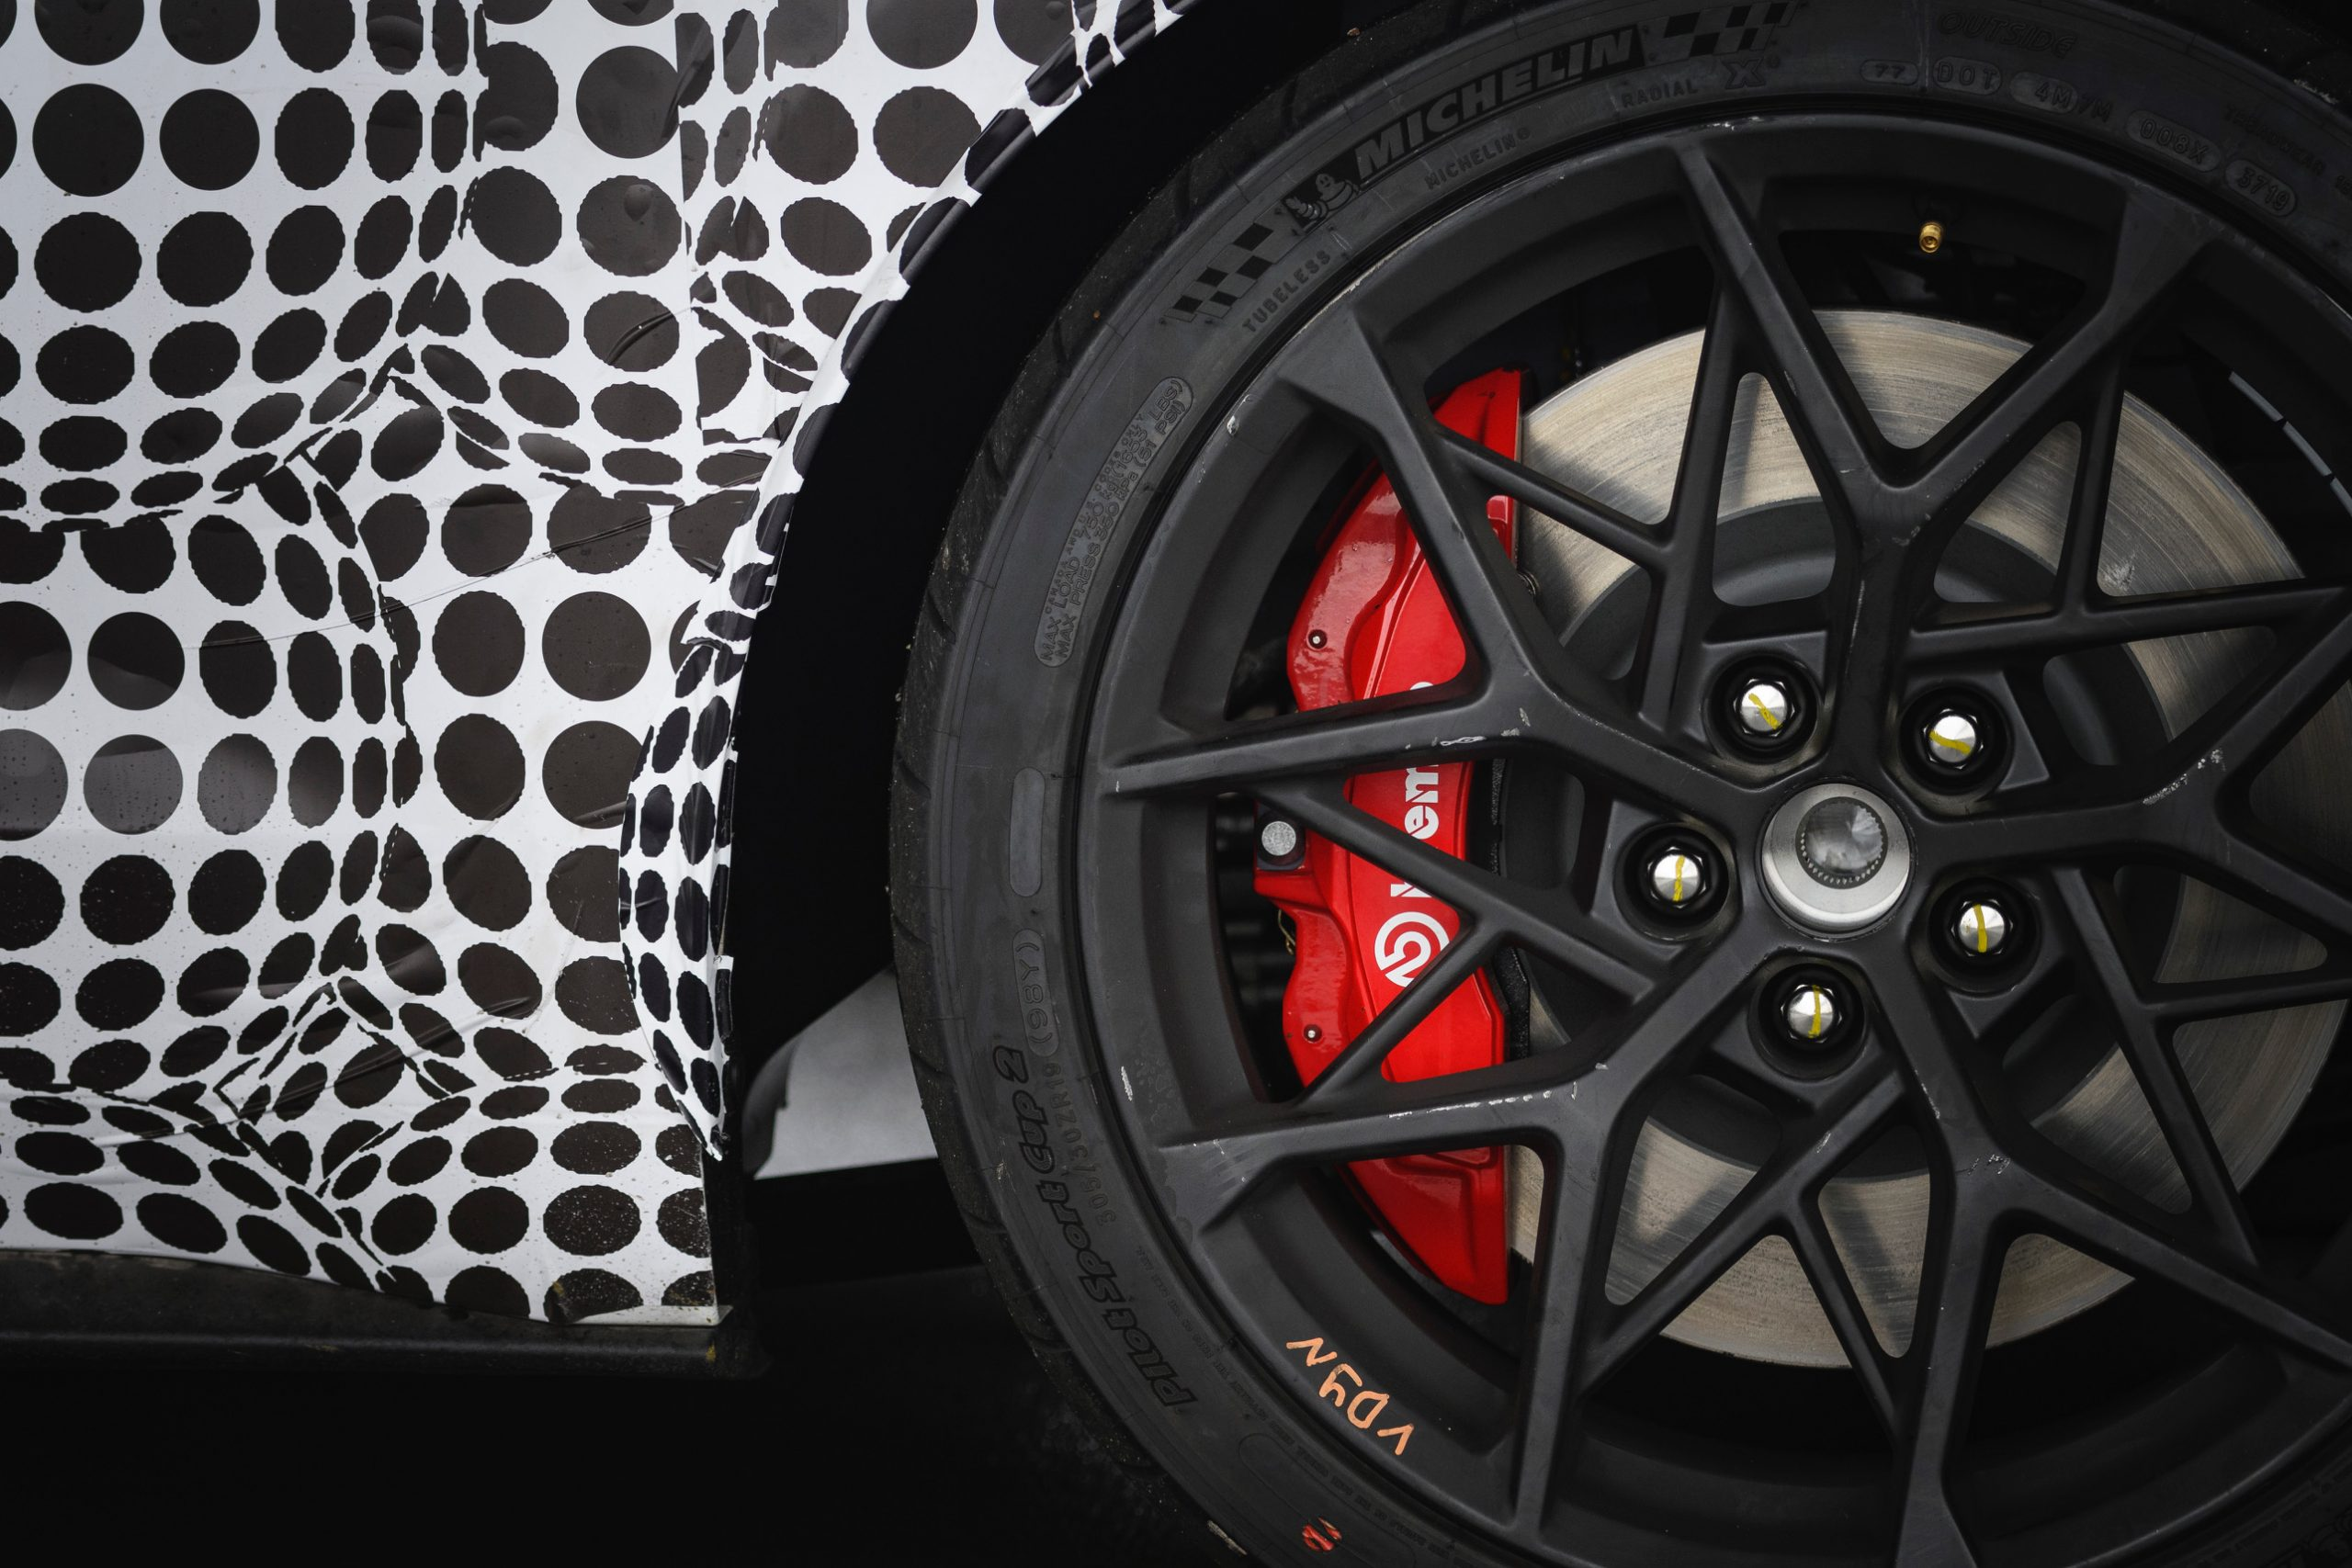 2021 Mustang Mach 1 Wheel And Caliper Close Up